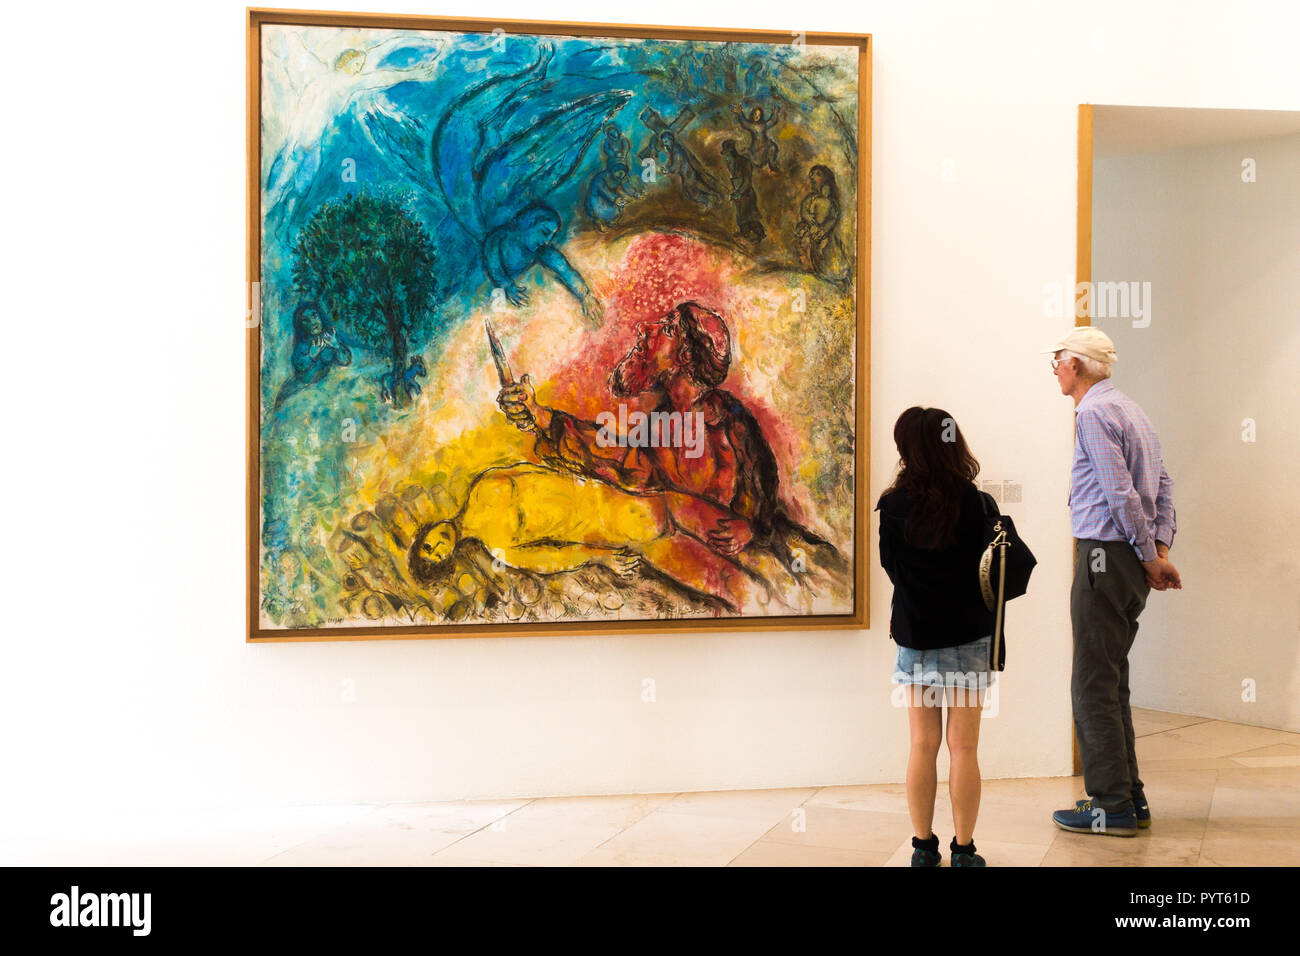 Abraham about to sacrifice Isaac - picture by Marc Chagall which hangs in the National museum of Marc Chagall in Nice, France - Stock Image